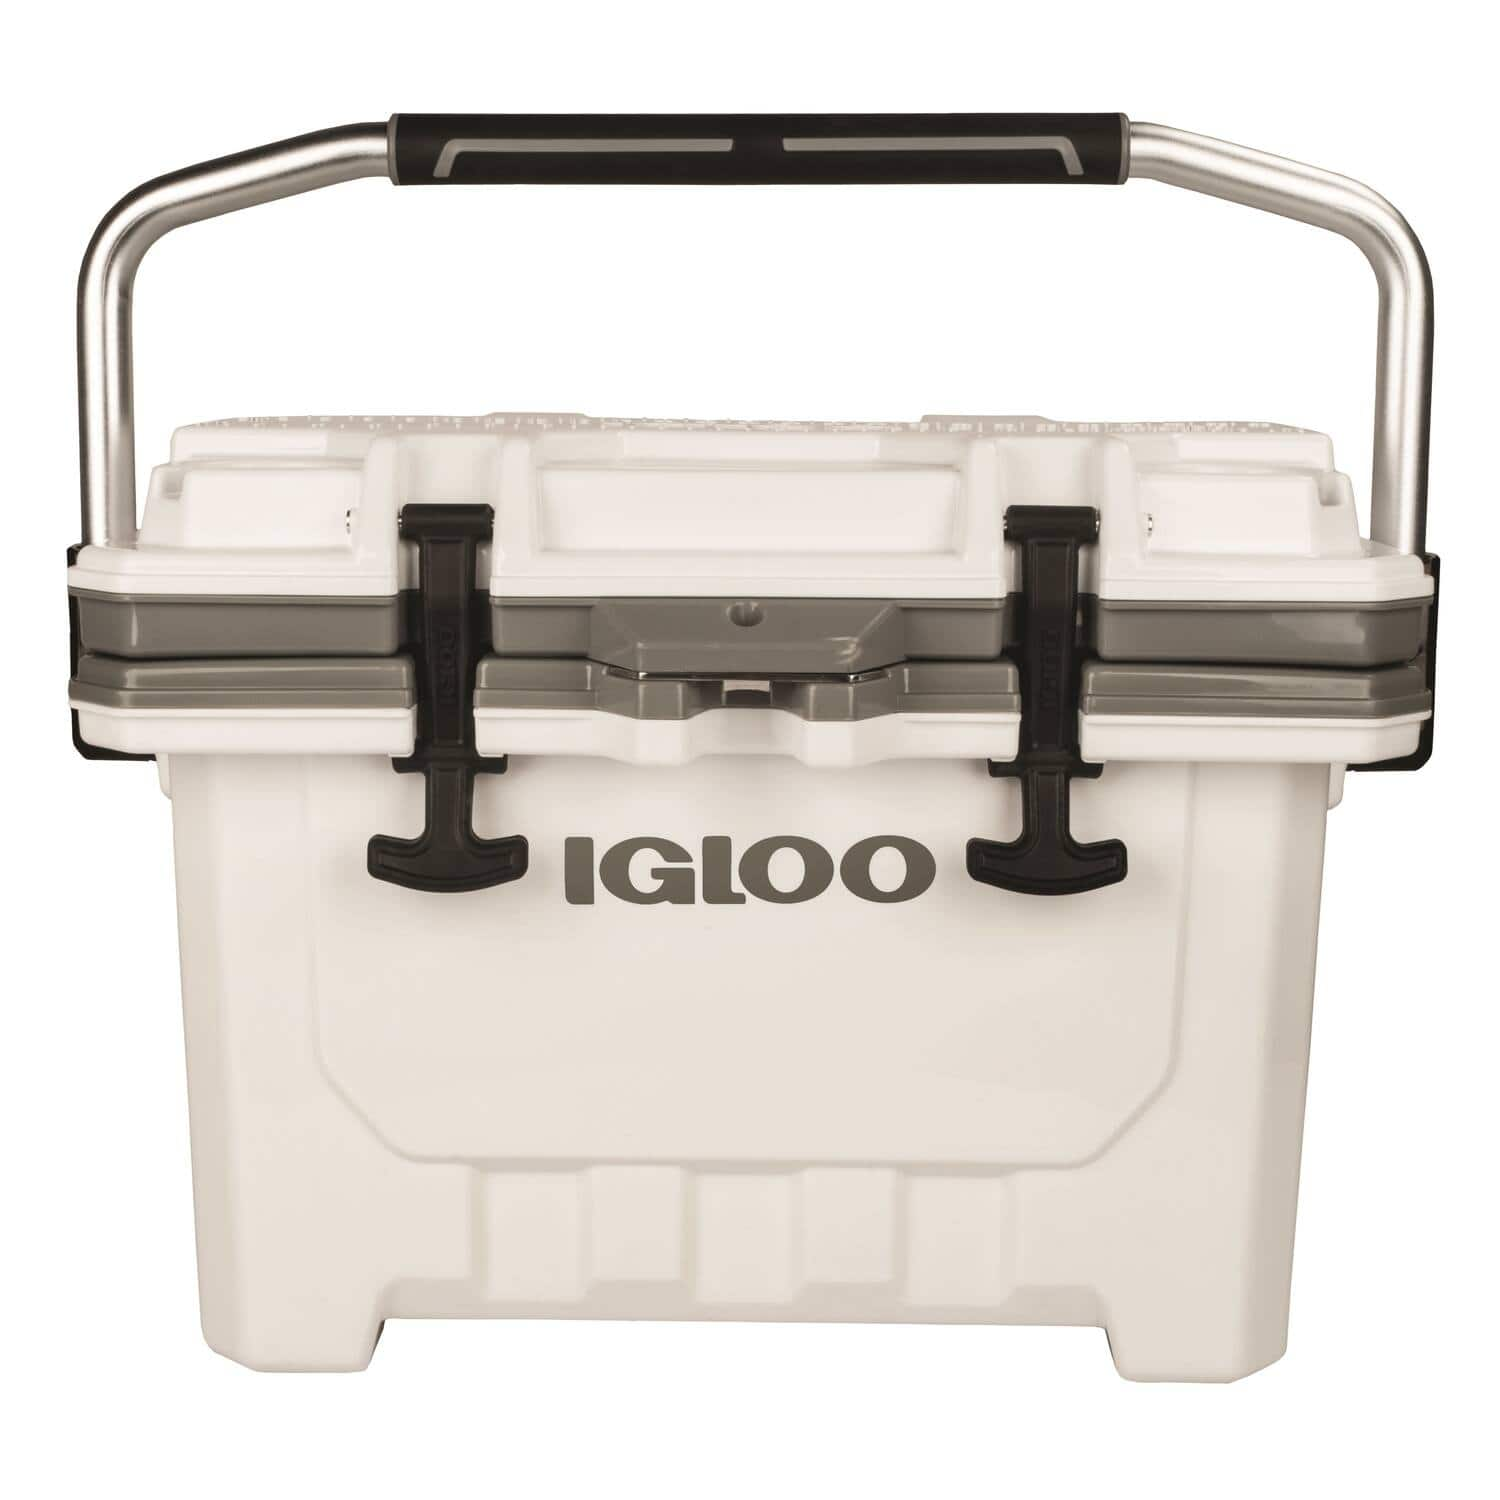 Igloo IMX Coolers: 24 Qt. in White $75, 70 Qt. $150 at Ace Hardware + Free Curbside Pickup